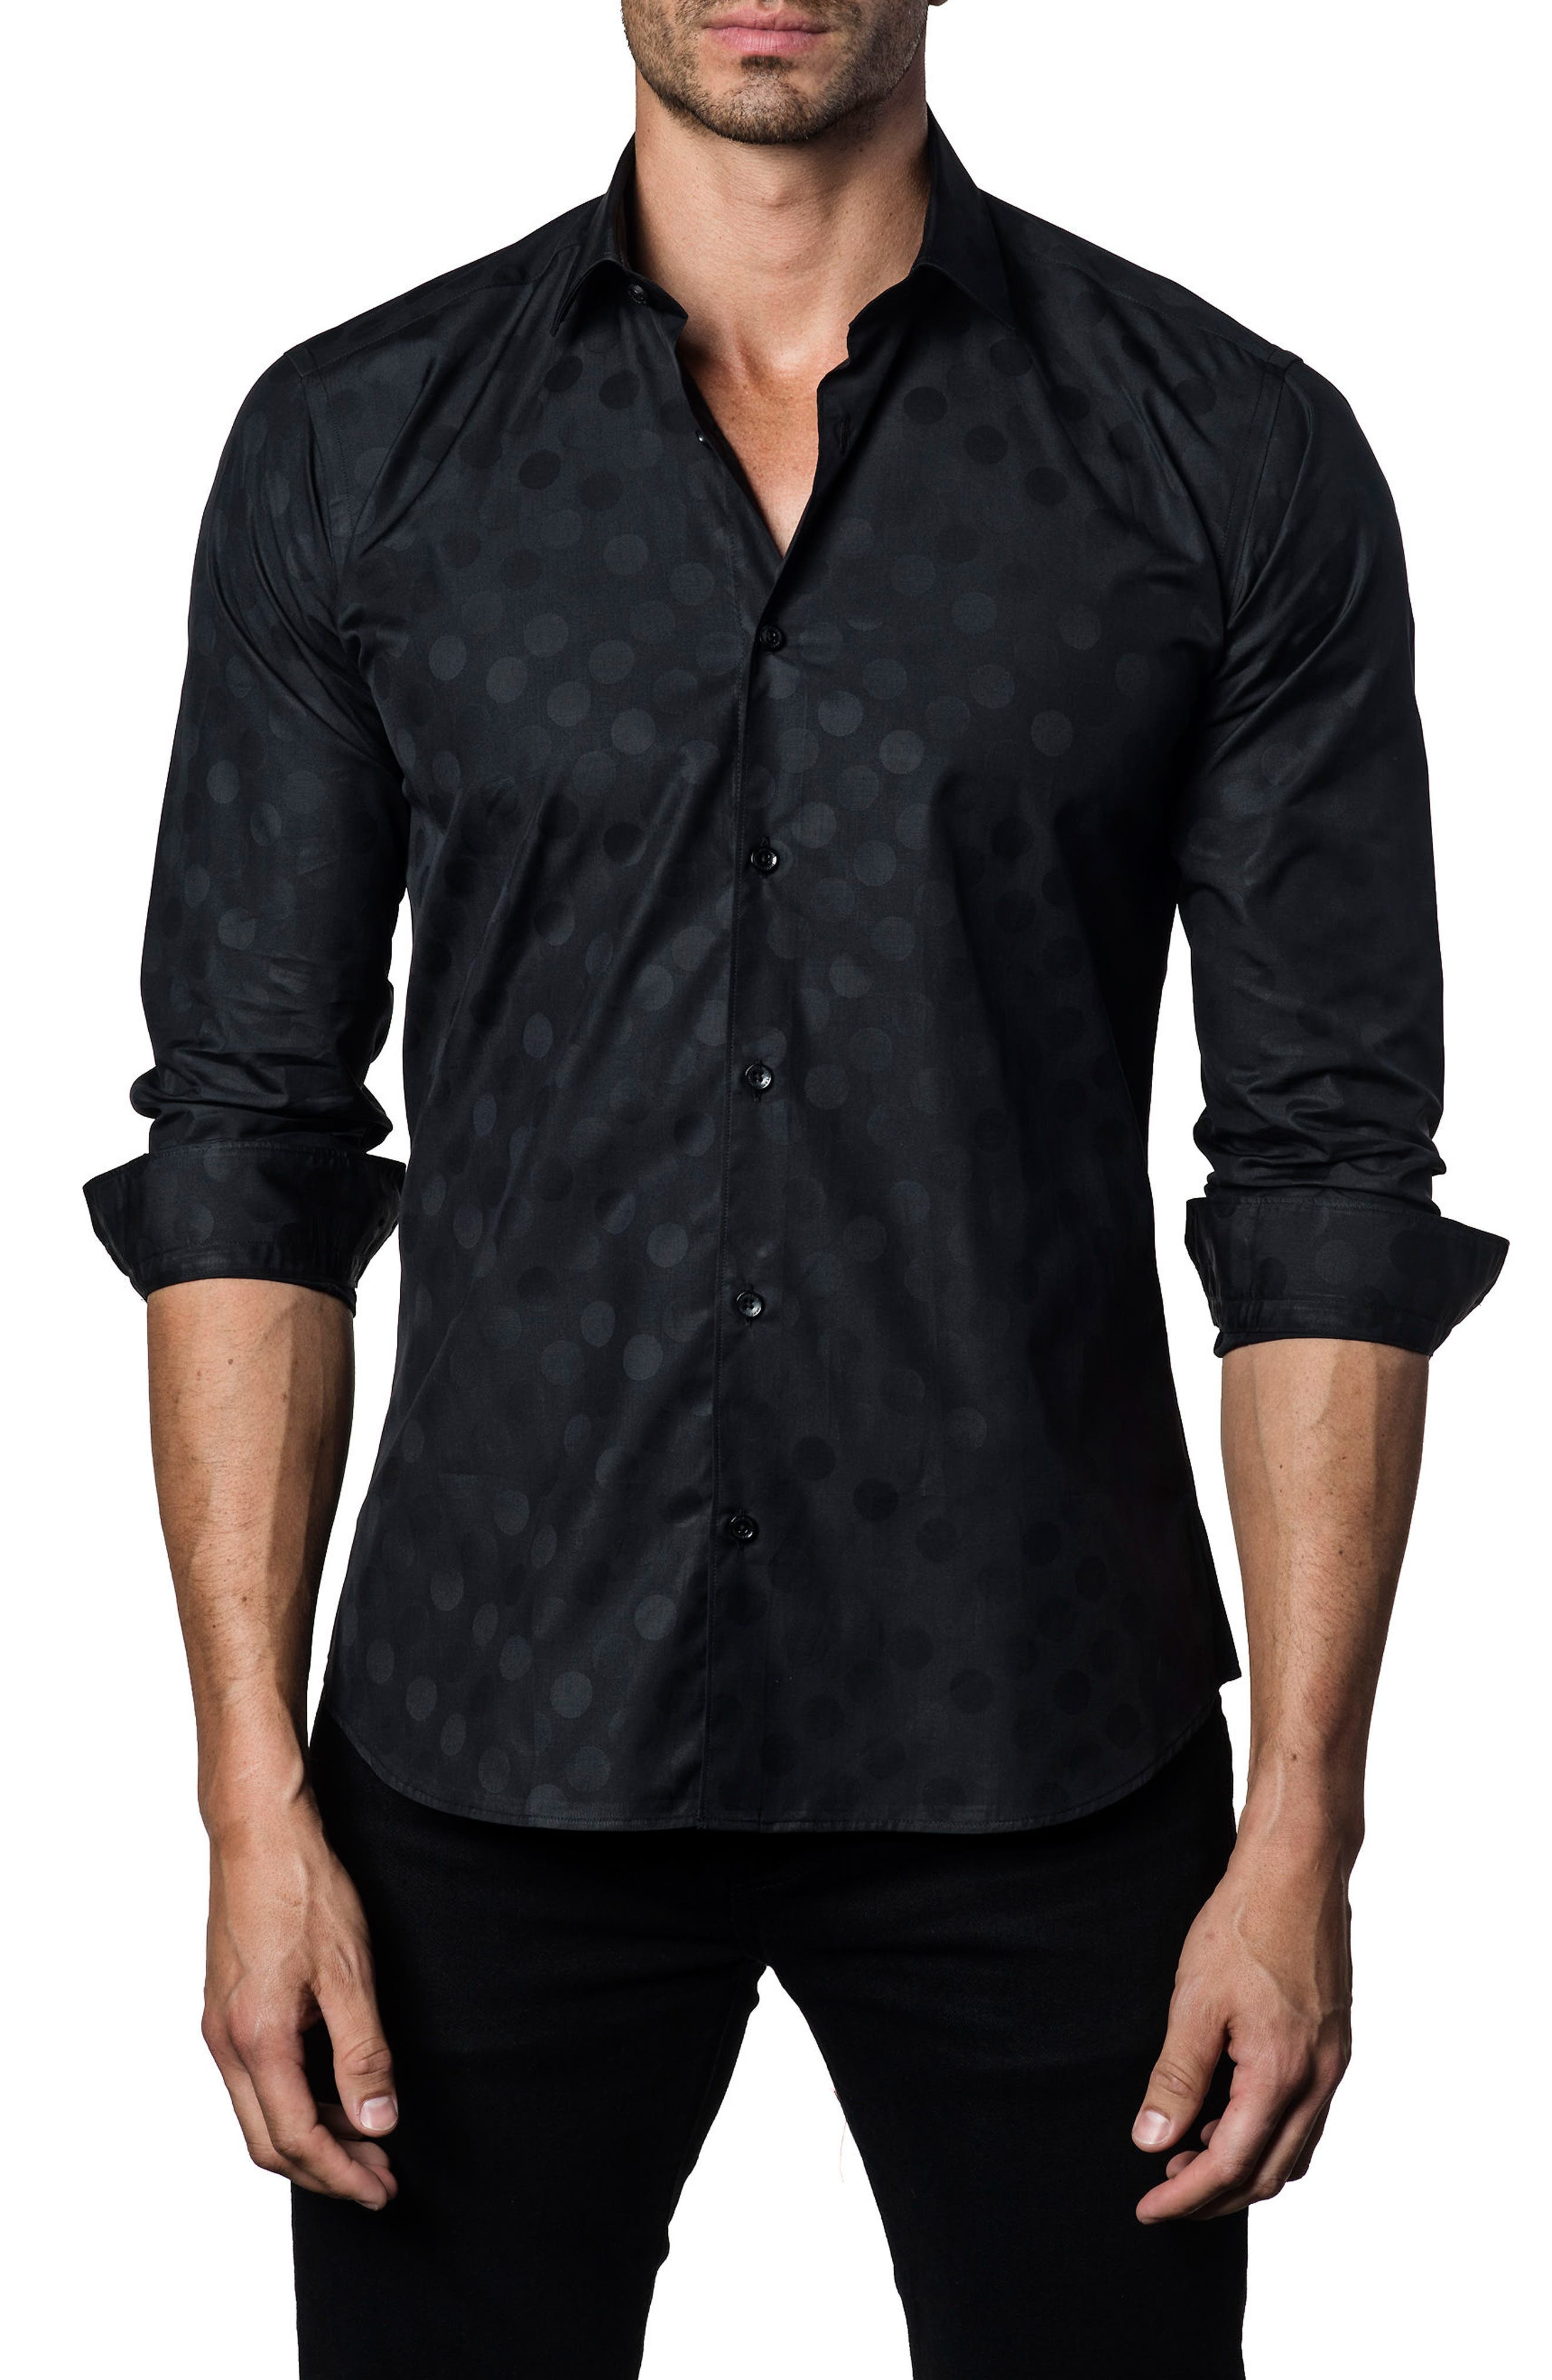 Dot Print Sport Shirt,                             Main thumbnail 1, color,                             Black Polka Dot Jacquard